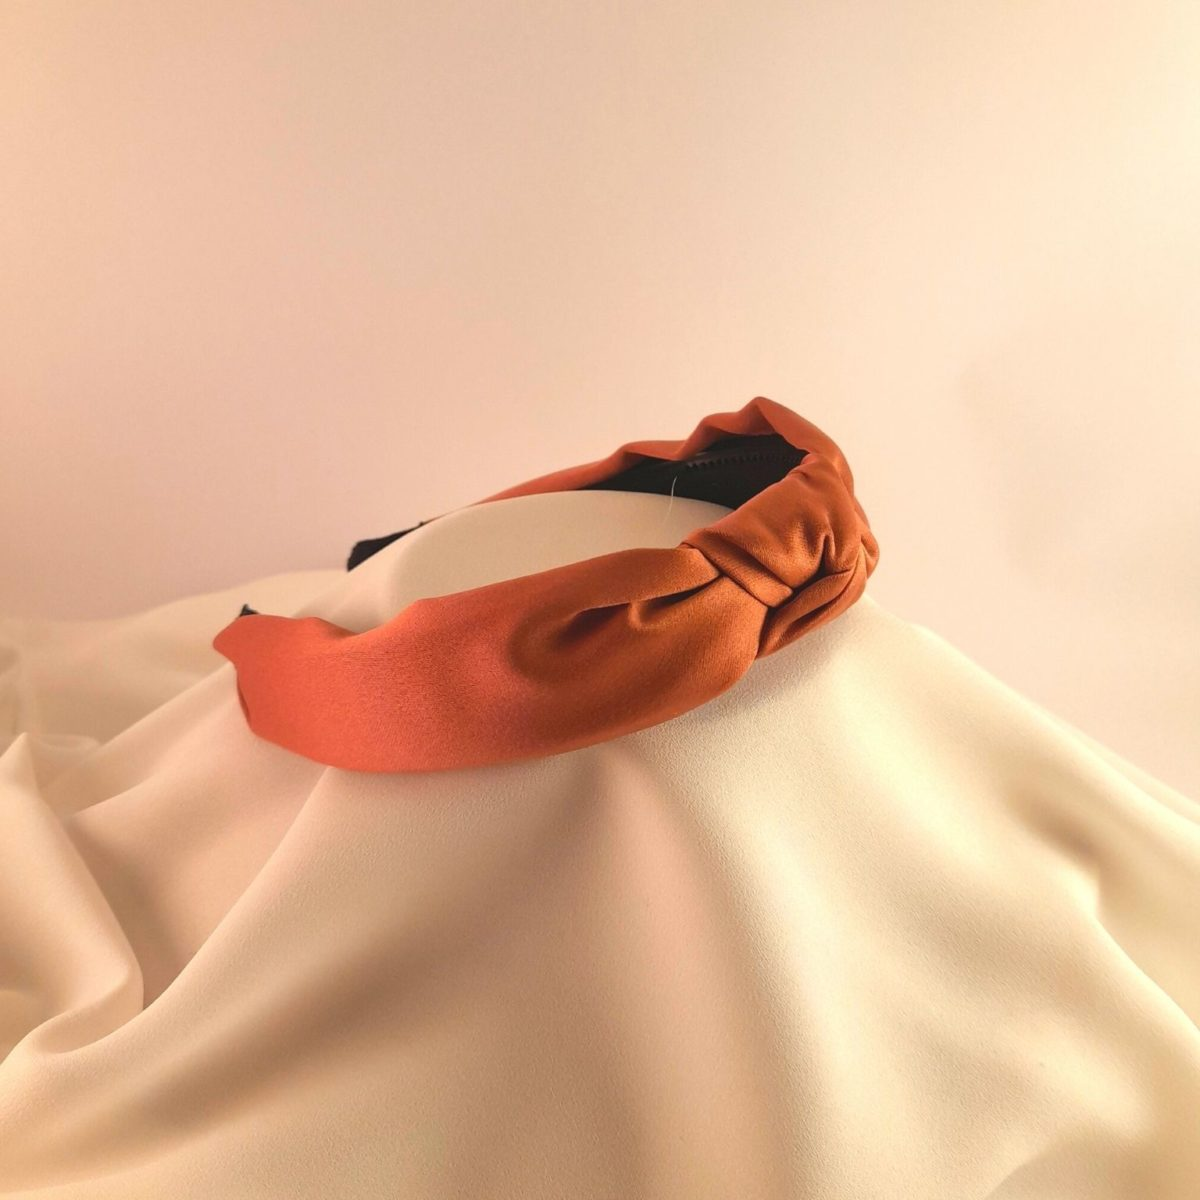 Clothing Headband With A Brick-colored Knot